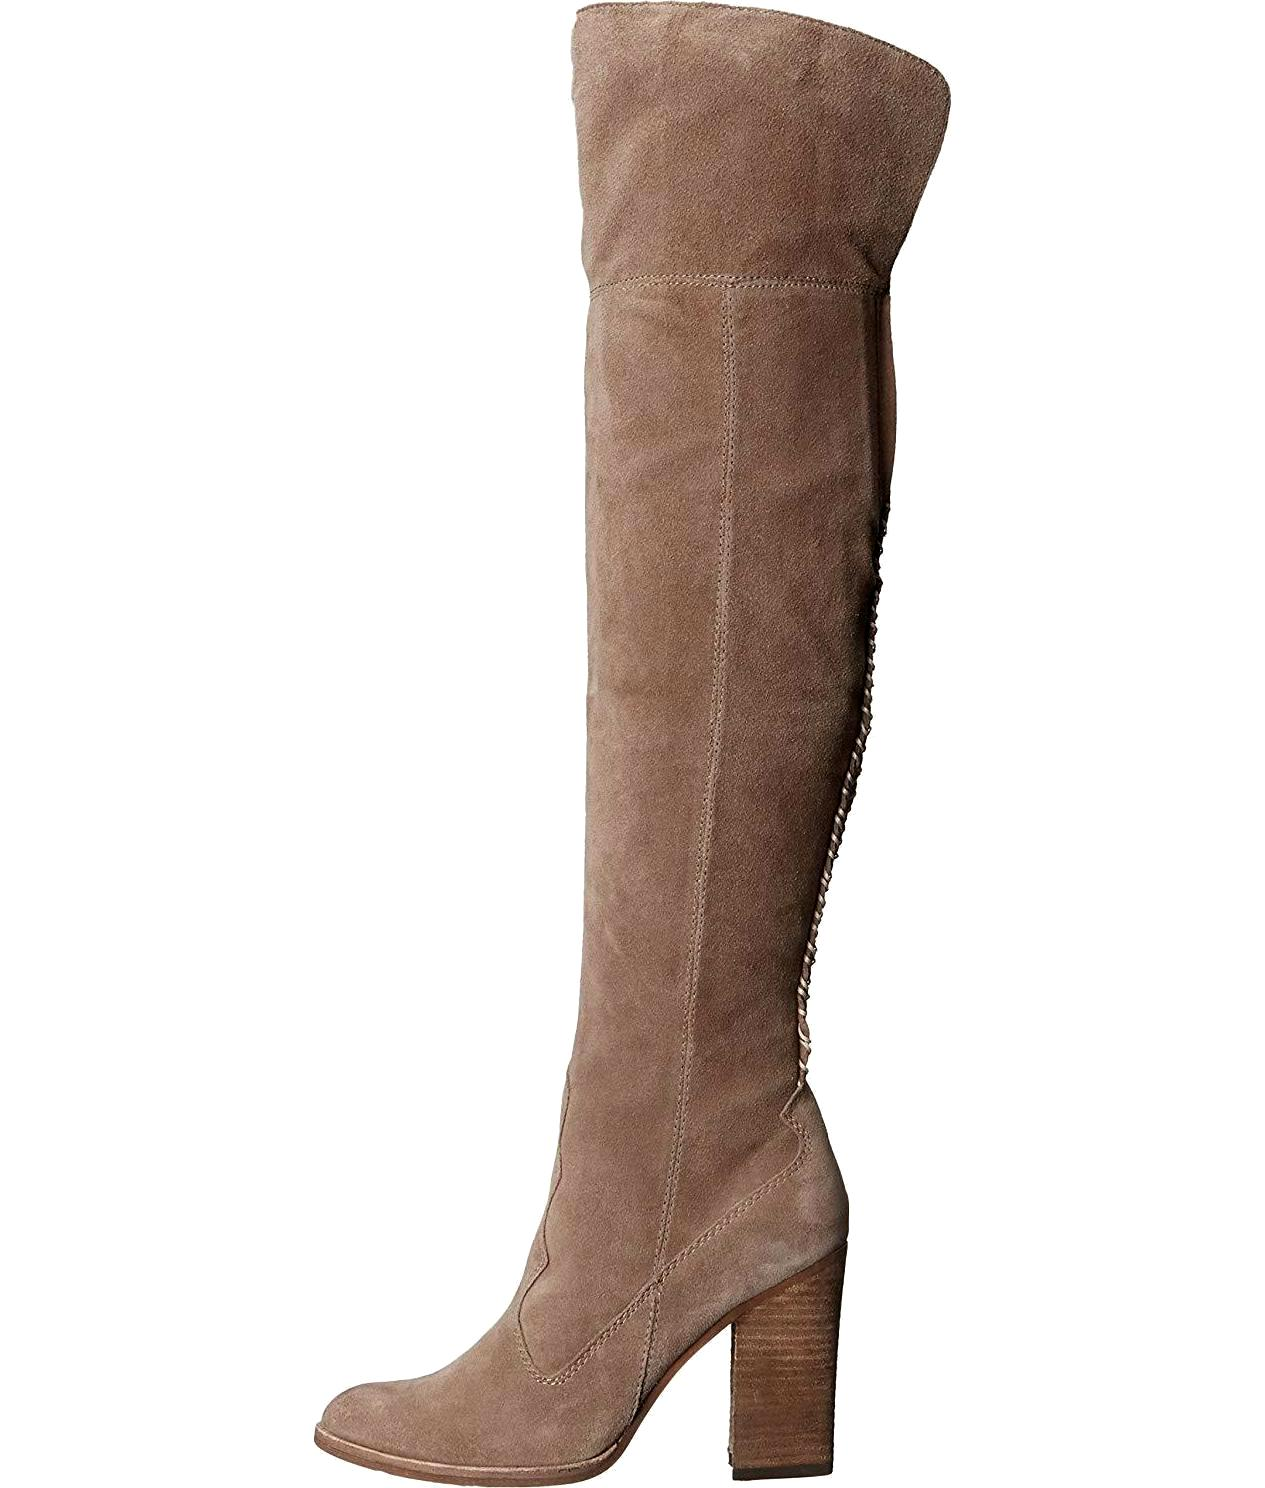 ba58c01c1d7 Dolce Vita Women s Cliff Western Boot in Light Taupe - Designer Boots